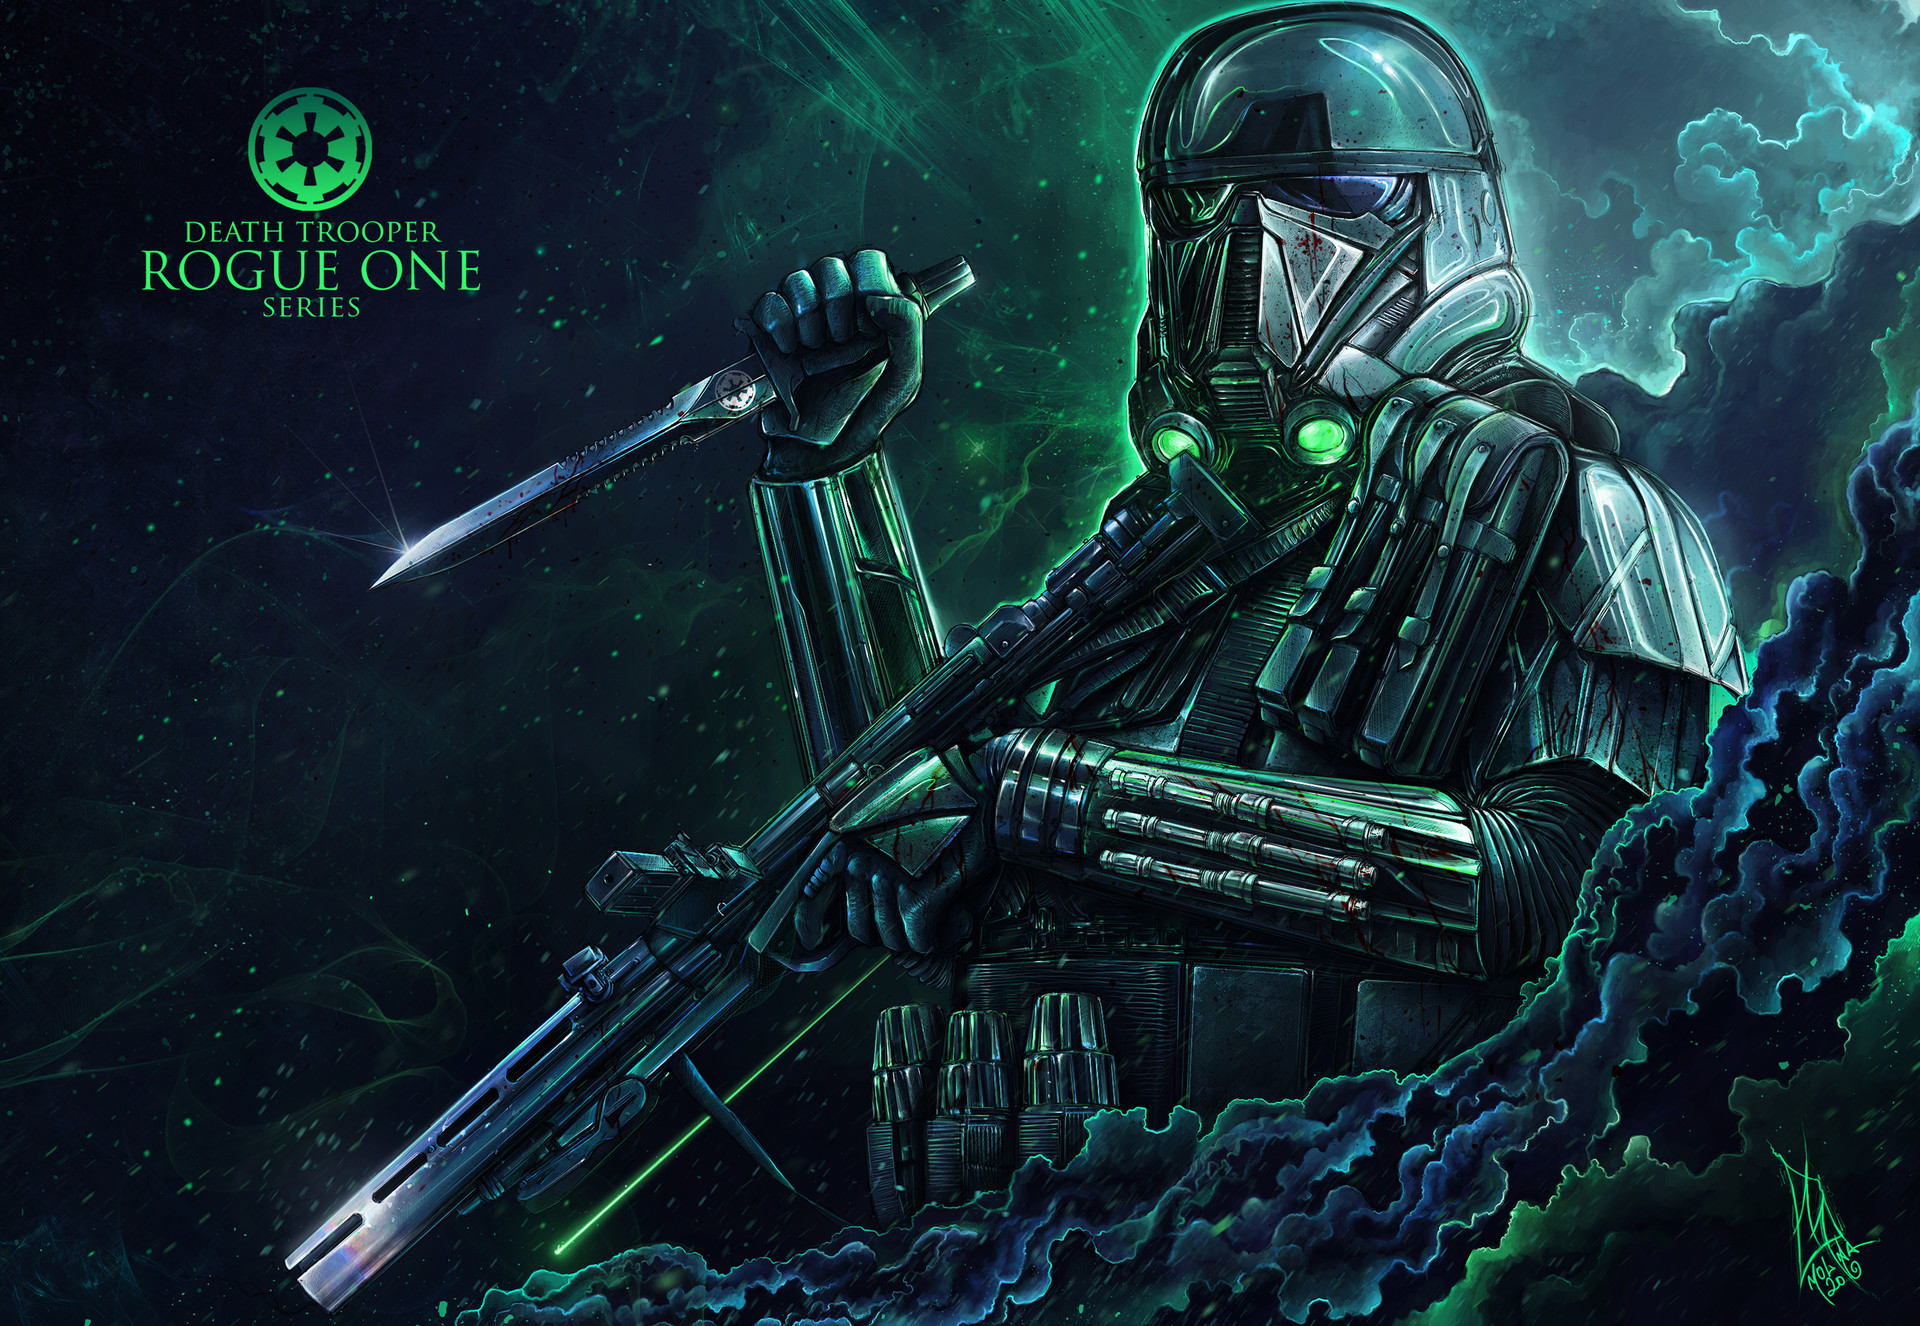 Death Trooper Hd Wallpaper Background Image 1920x1326 Id 1028345 Wallpaper Abyss